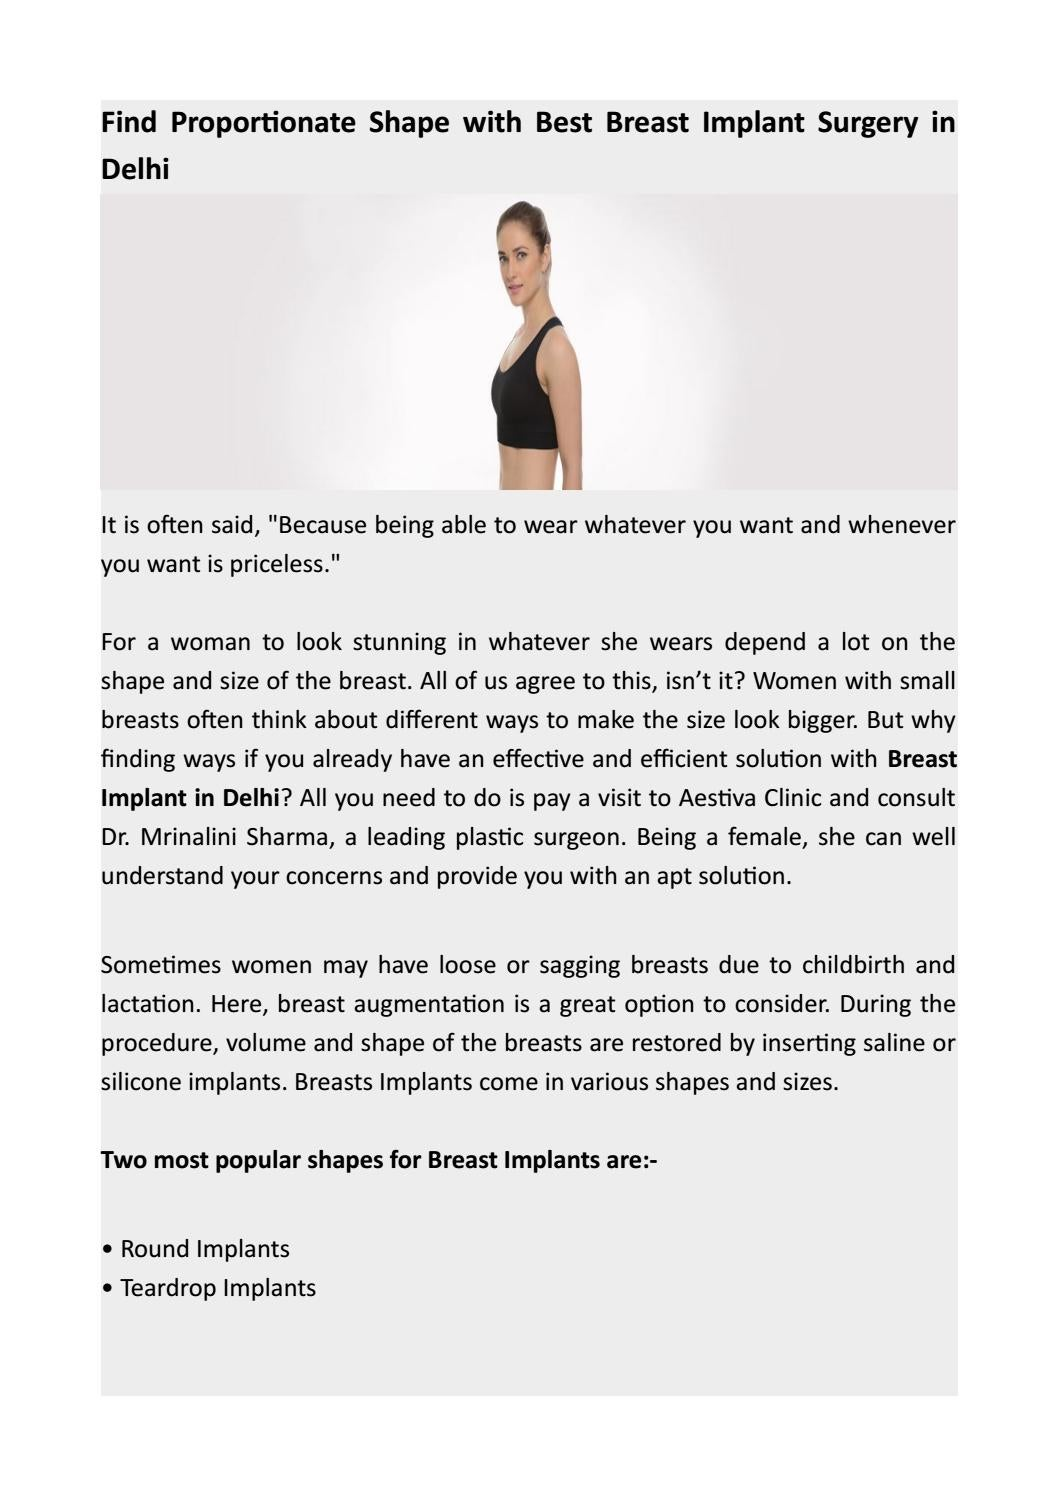 Contact Best Cosmetic Surgeon for Breast Implant Surgery in Delhi